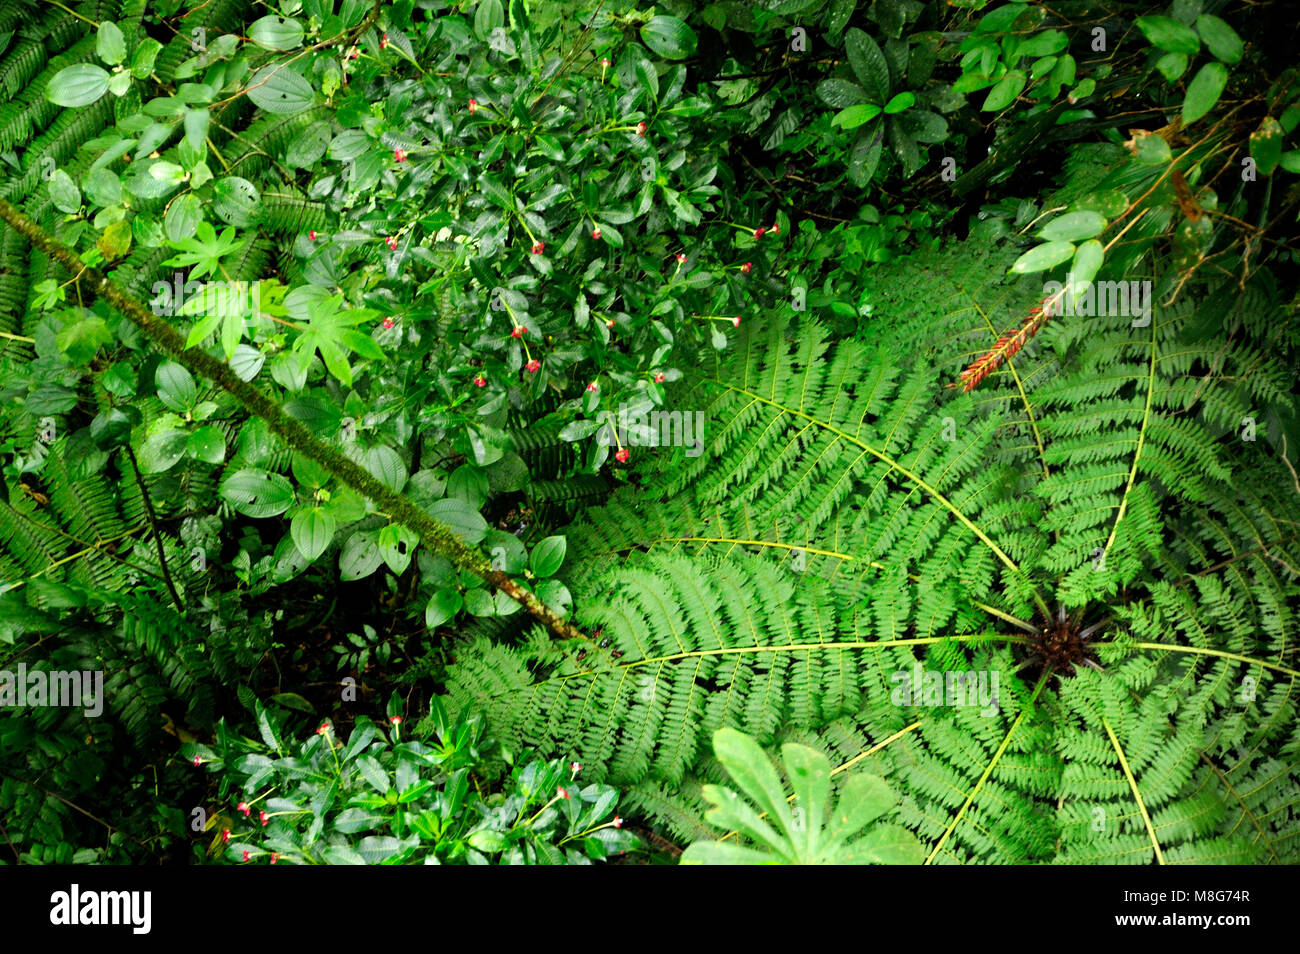 The Monteverde Cloud Forest Reserve was established in 1972 and initially covered some 810 acres of forested land. - Stock Image